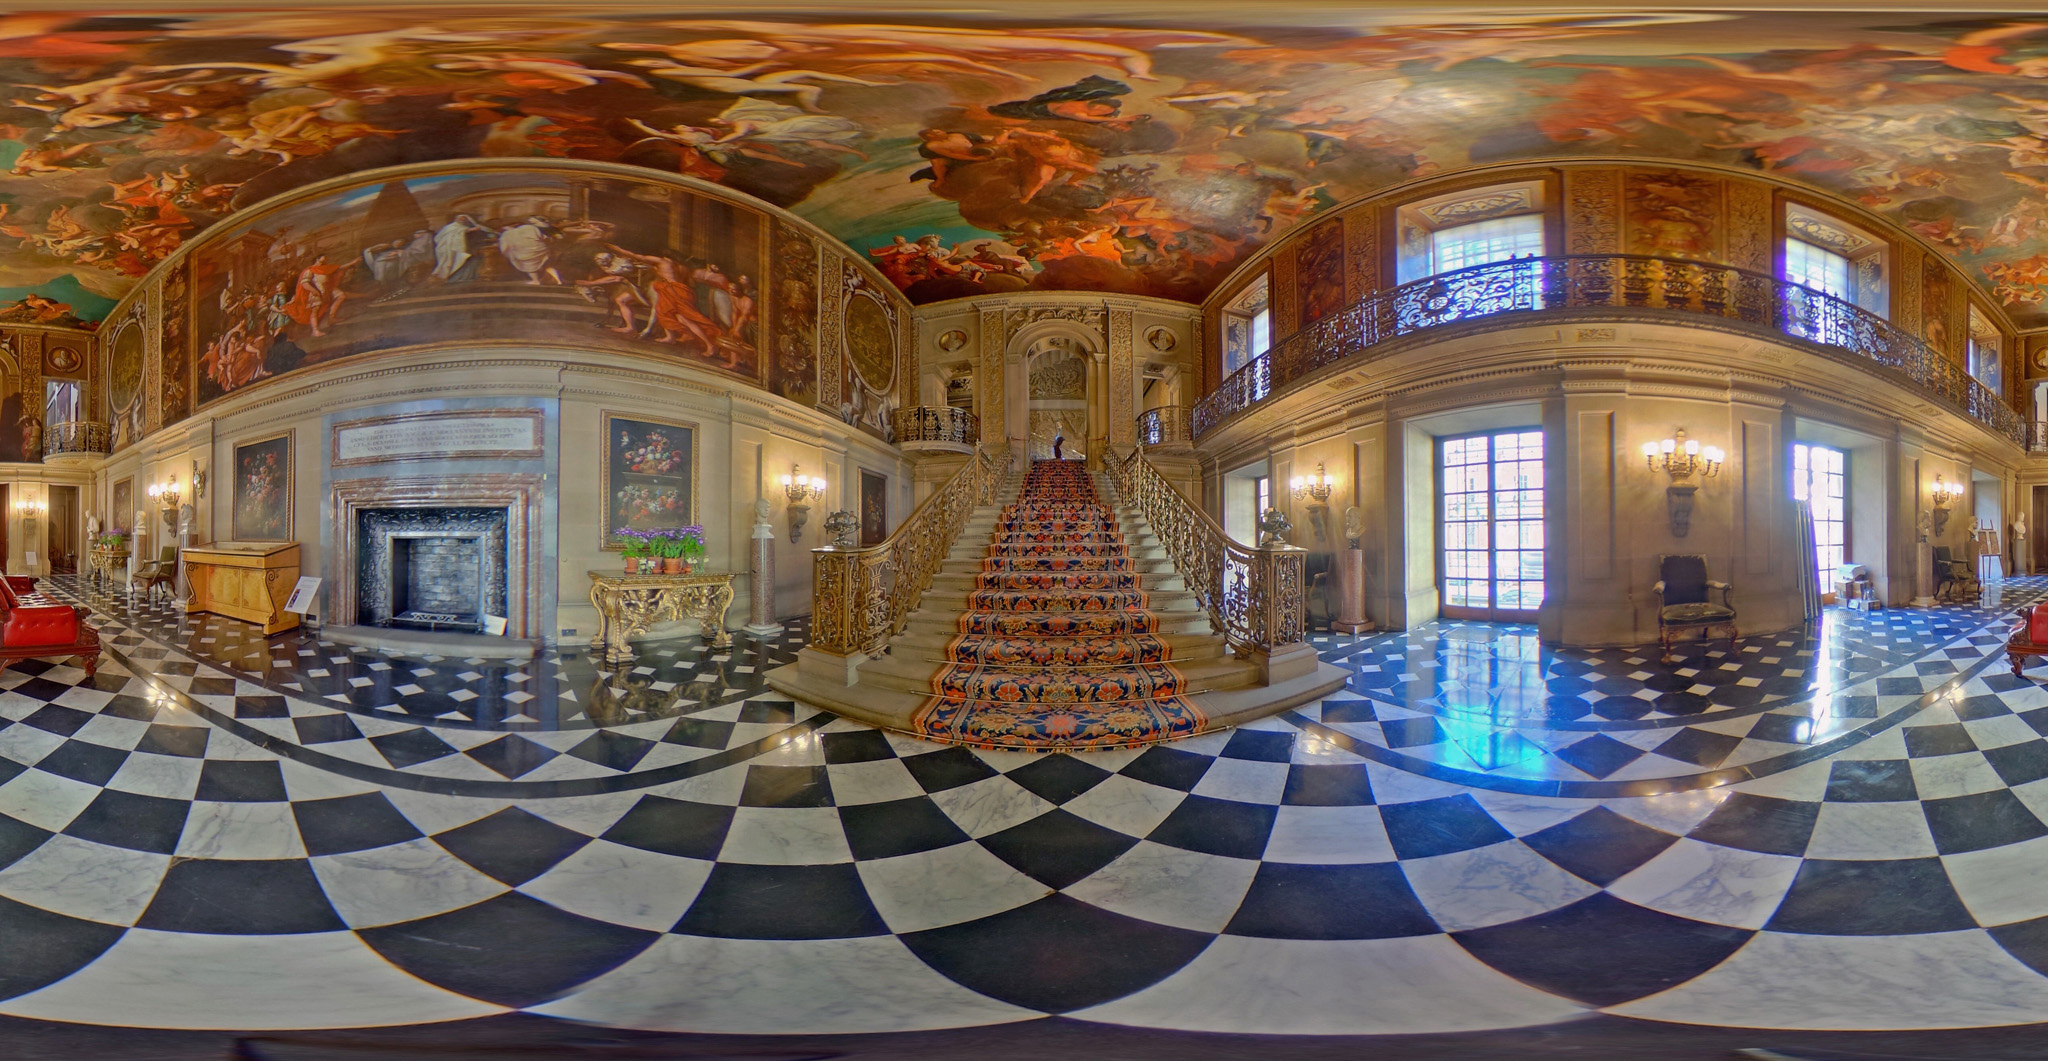 Chatsworth House Season Opening 2016...CHATSWORTH, ENGLAND - MARCH 16:  (EDITOR'S NOTE: Image was created as an Equirectangular Panorama. Import image into a panoramic player to create an interactive 360 degree view.) A 360 view of the Painted Hall at Chatsworth House on March 16, 2016 in Chatsworth, England. Chatsworth House, Garden and Farmyard opens on 19 March 2016 for the new season which includes an exhibition of the glittering social circle of Deborah, Duchess of Devonshire through the photos of Cecil Beaton, Dan Pearsons award winning Chelsea Flower Show garden and the celebration of the Grand Tour through the eyes and collection of the Devonshire Family.  (Photo by Christopher Furlong/Getty Images)